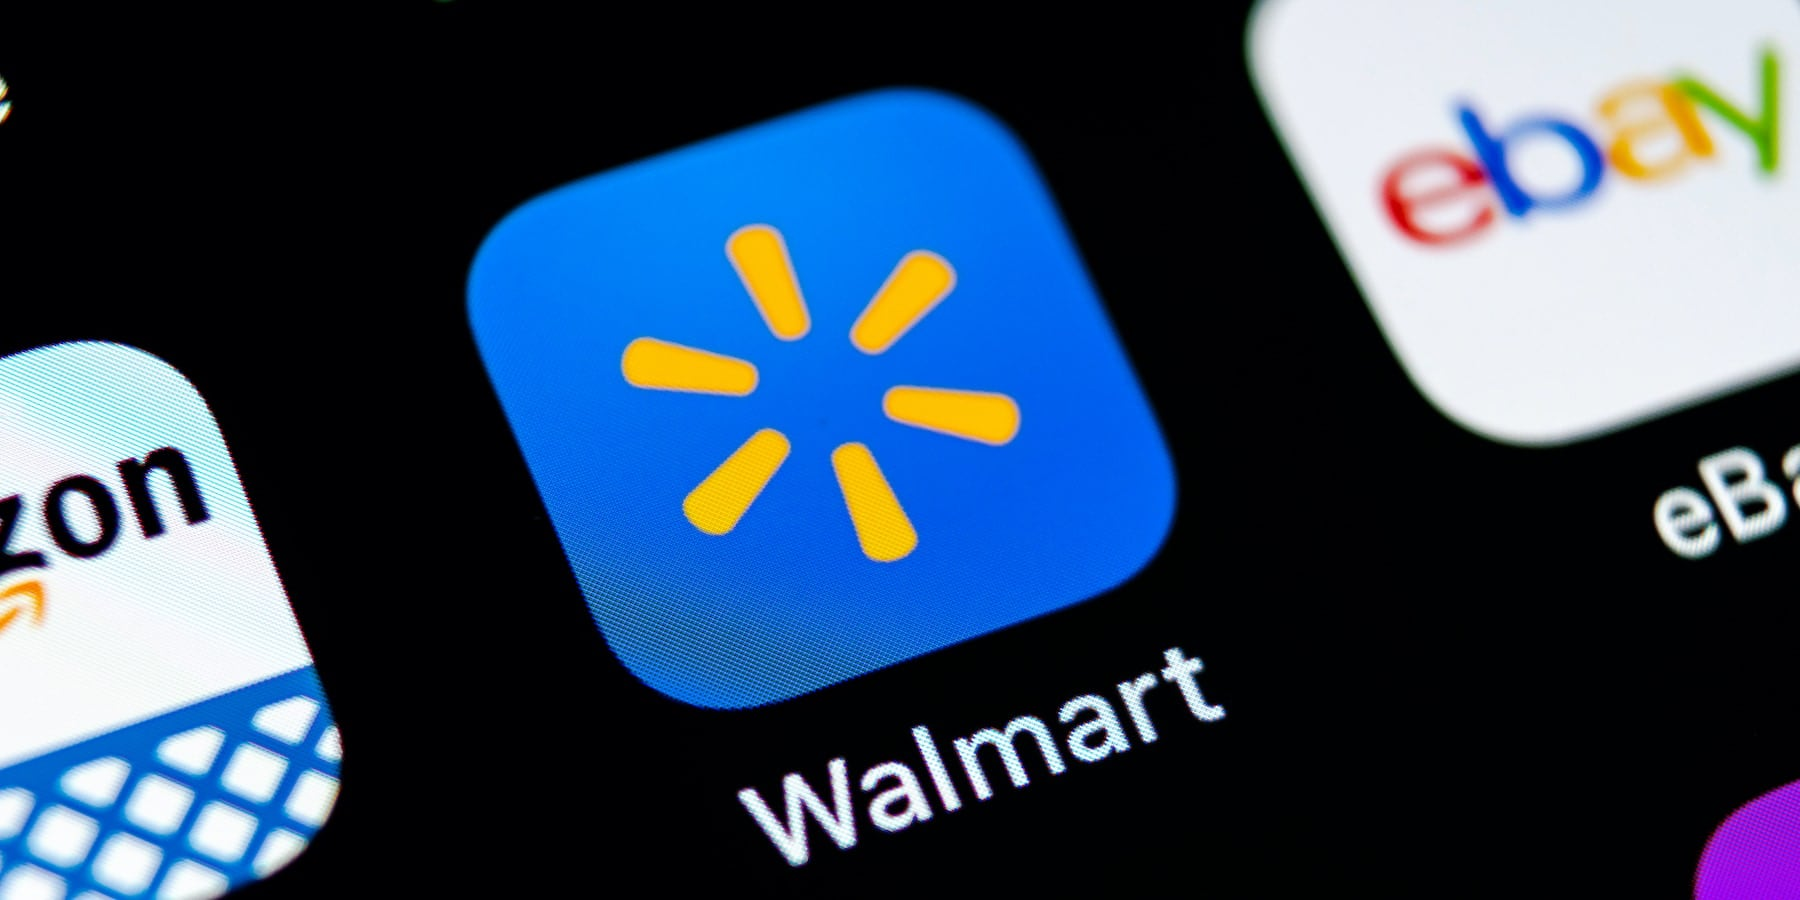 Warum The Digital Leaders Fund in die Walmart Aktie investiert